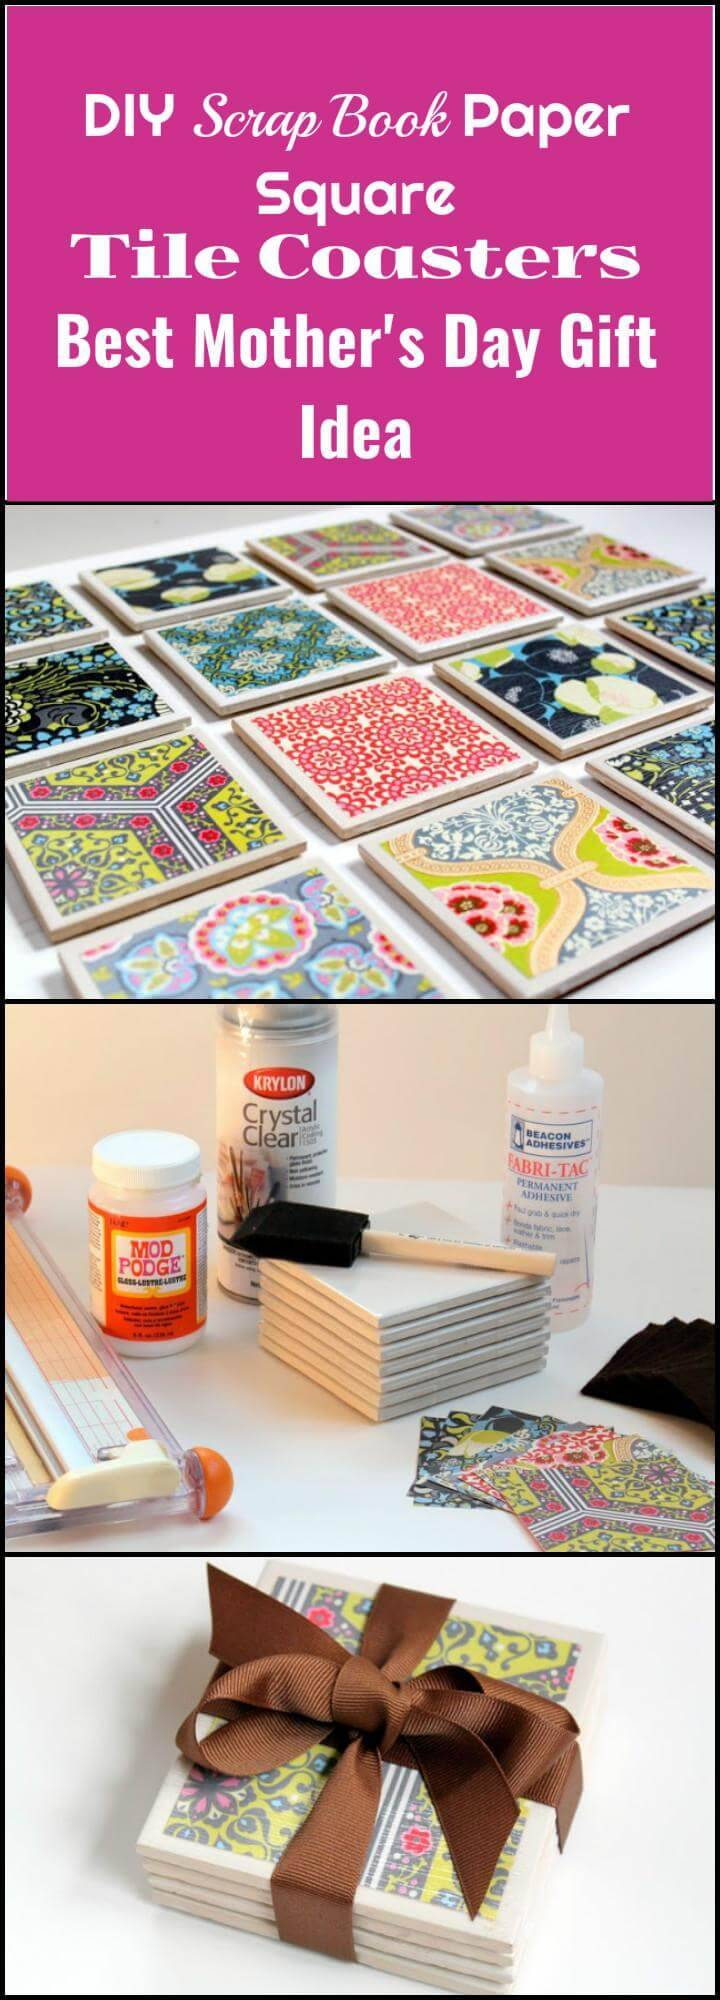 DIY scrap book paper square tile coasters